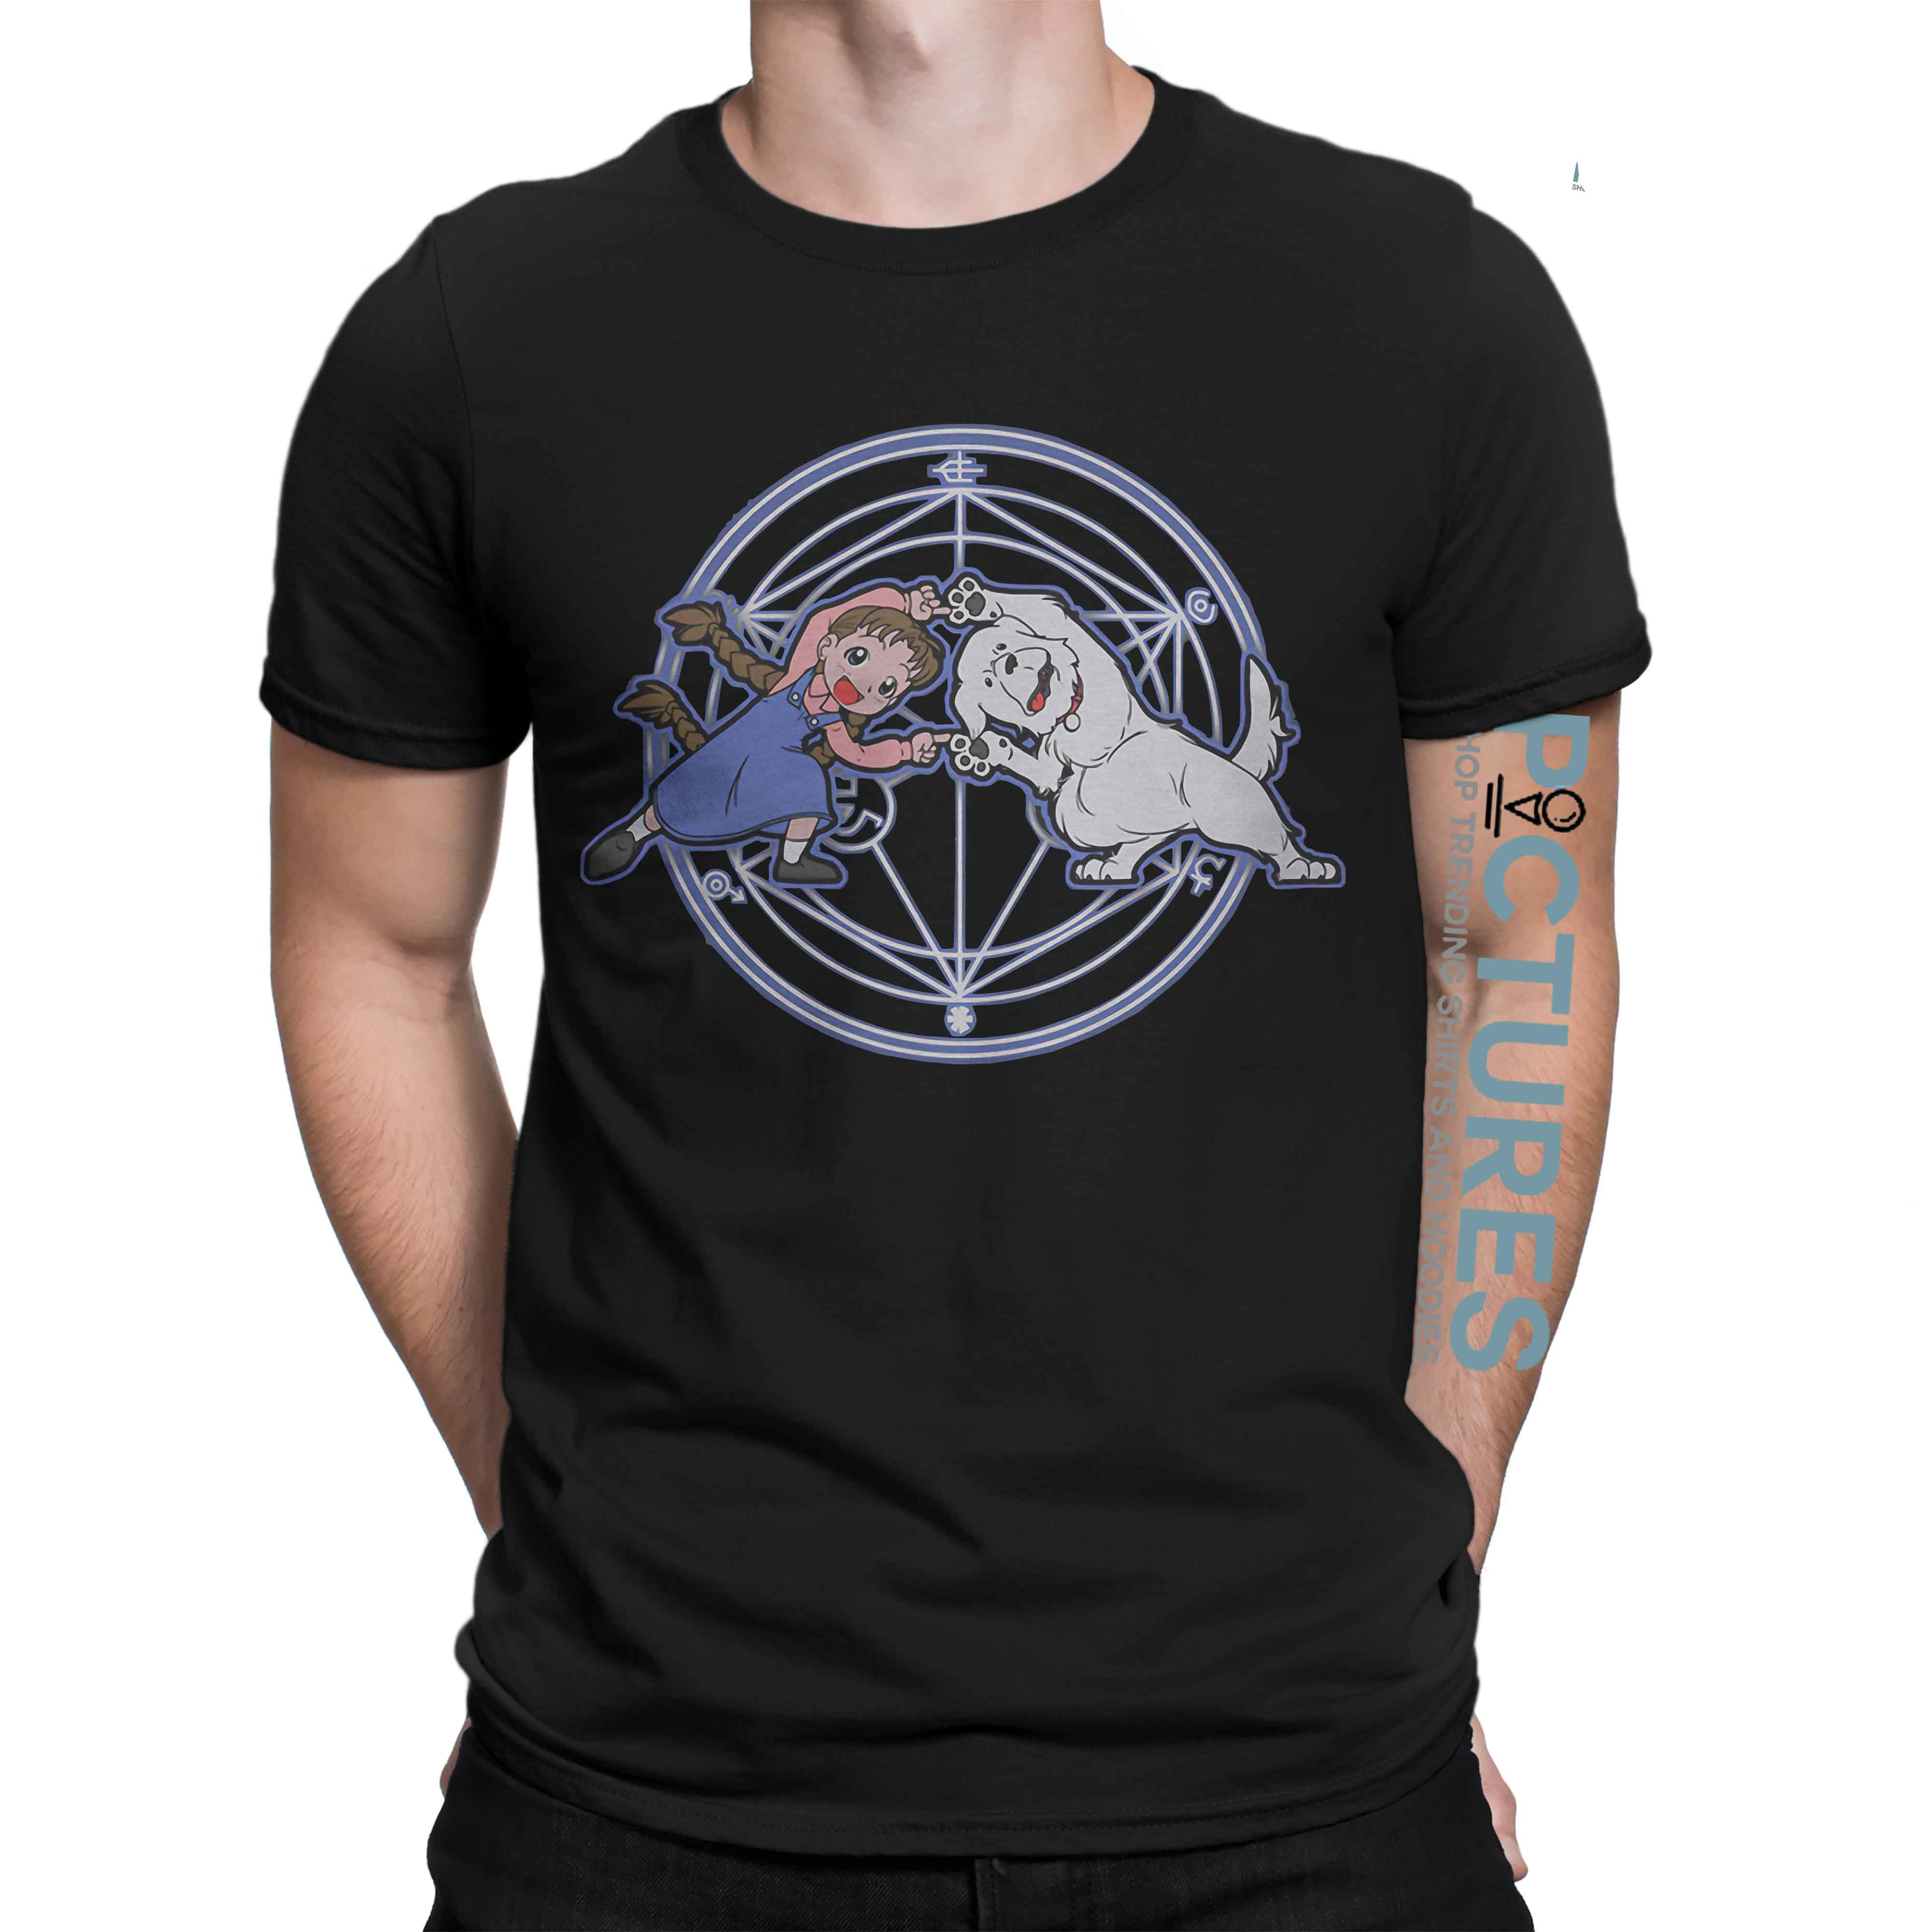 Nina Fullmetal Alchemist Happy Fusion Dance Fun times shirt 1 Picturestees Clothing - T Shirt Printing on Demand